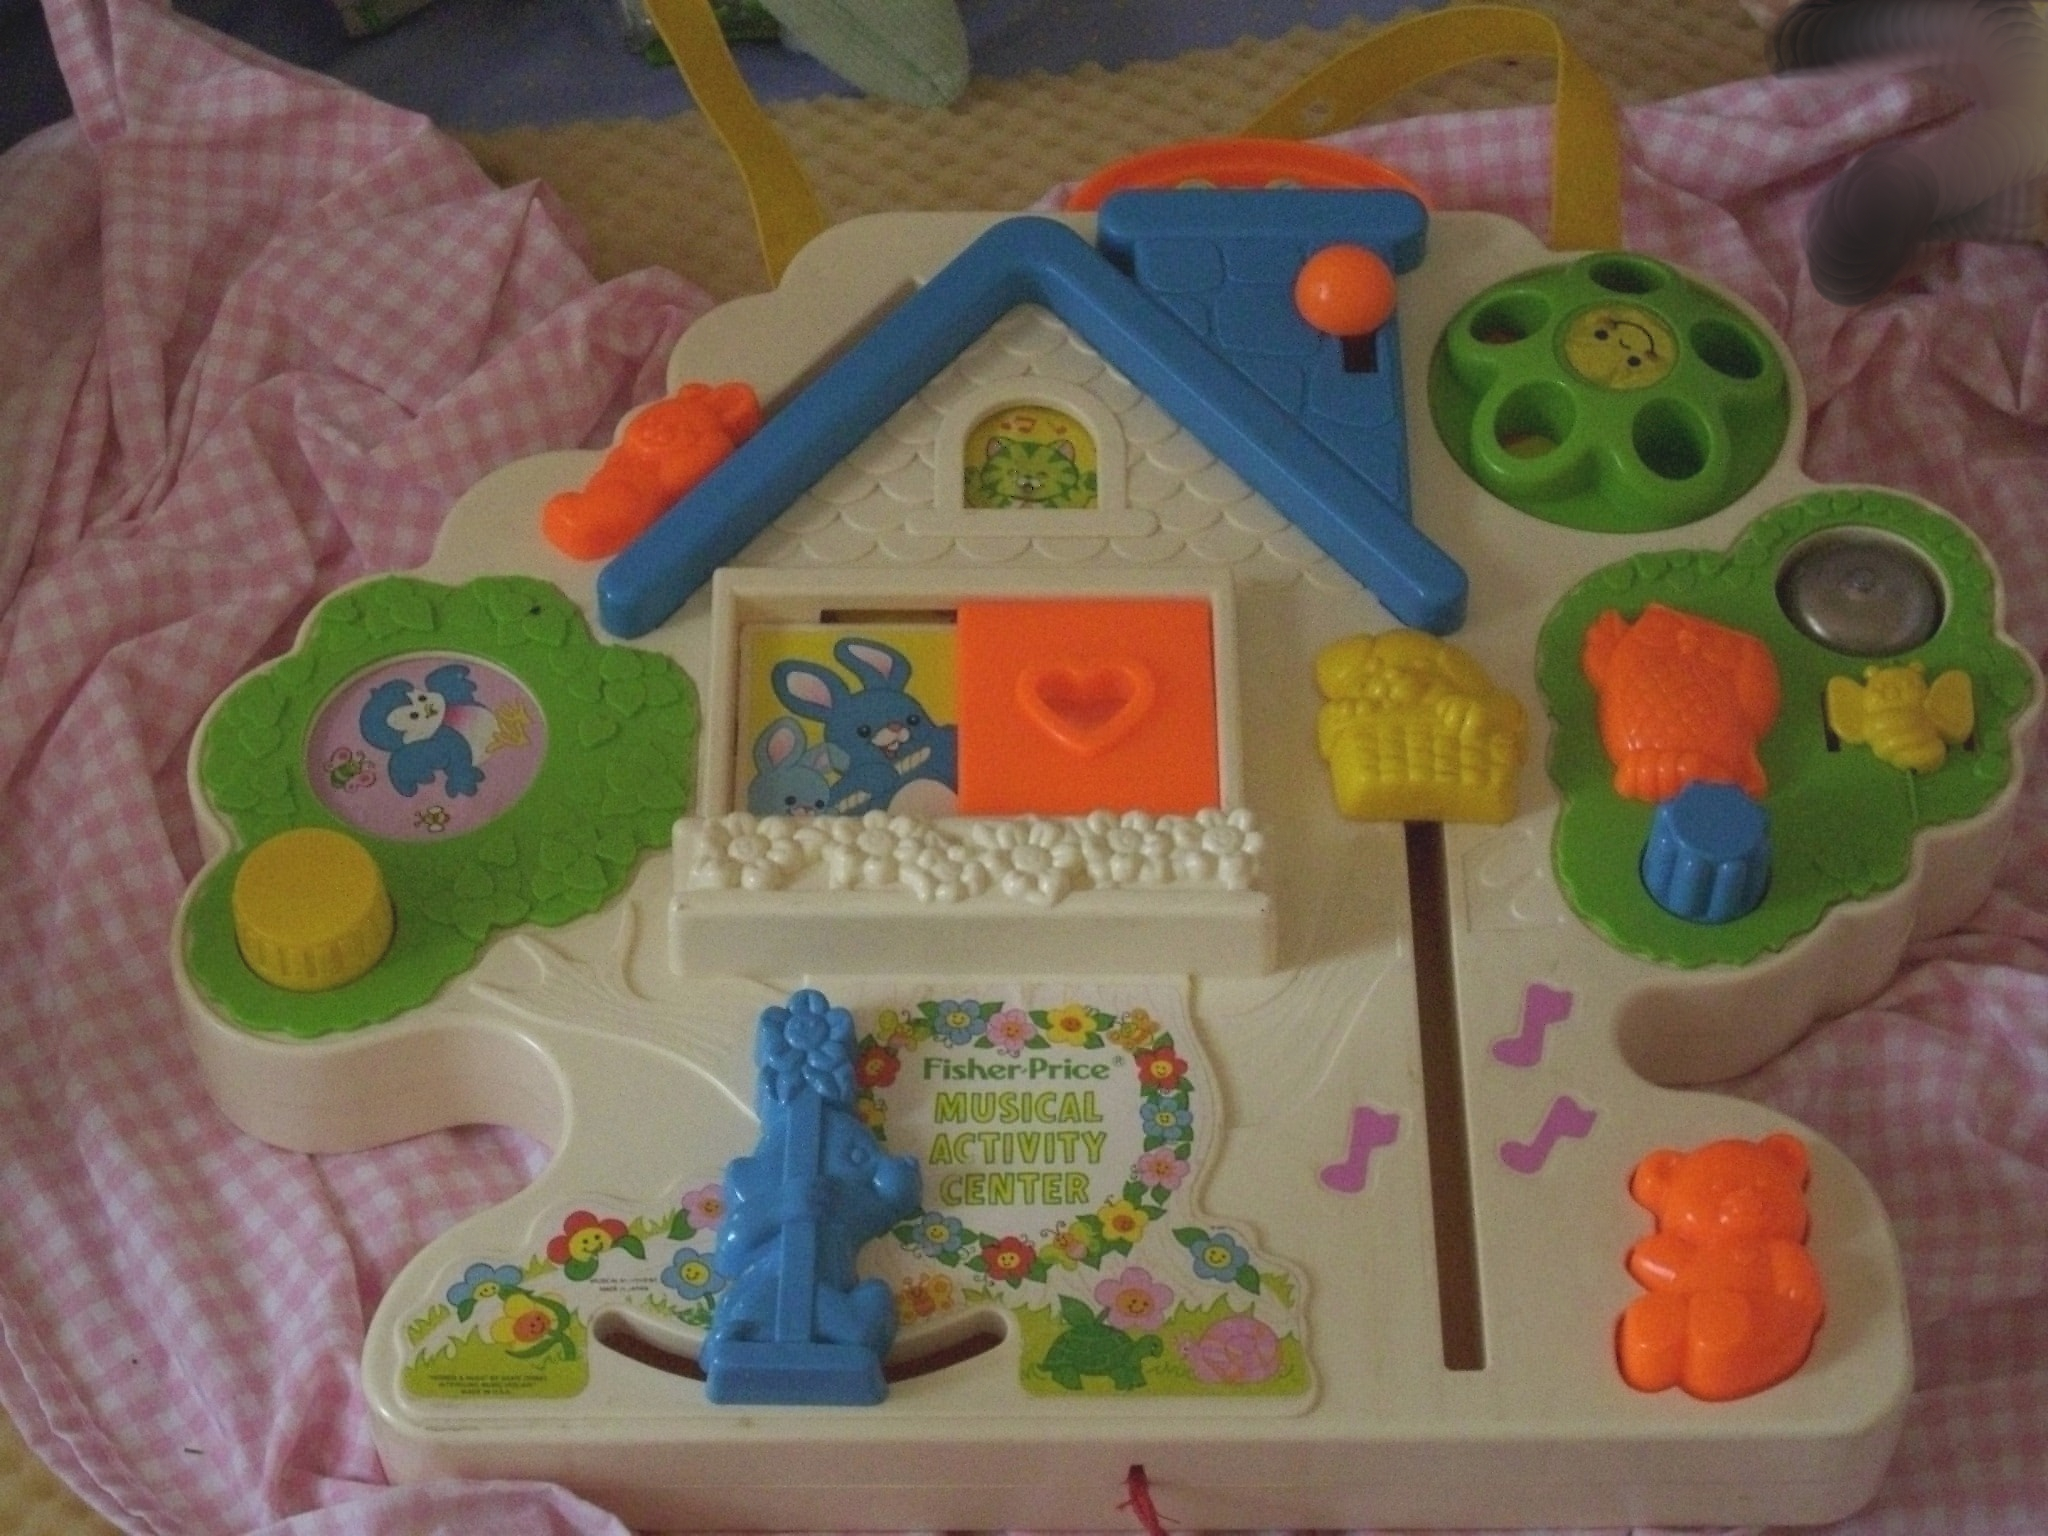 Crib activity toys for babies - Fisher Price Crib Activity Center House